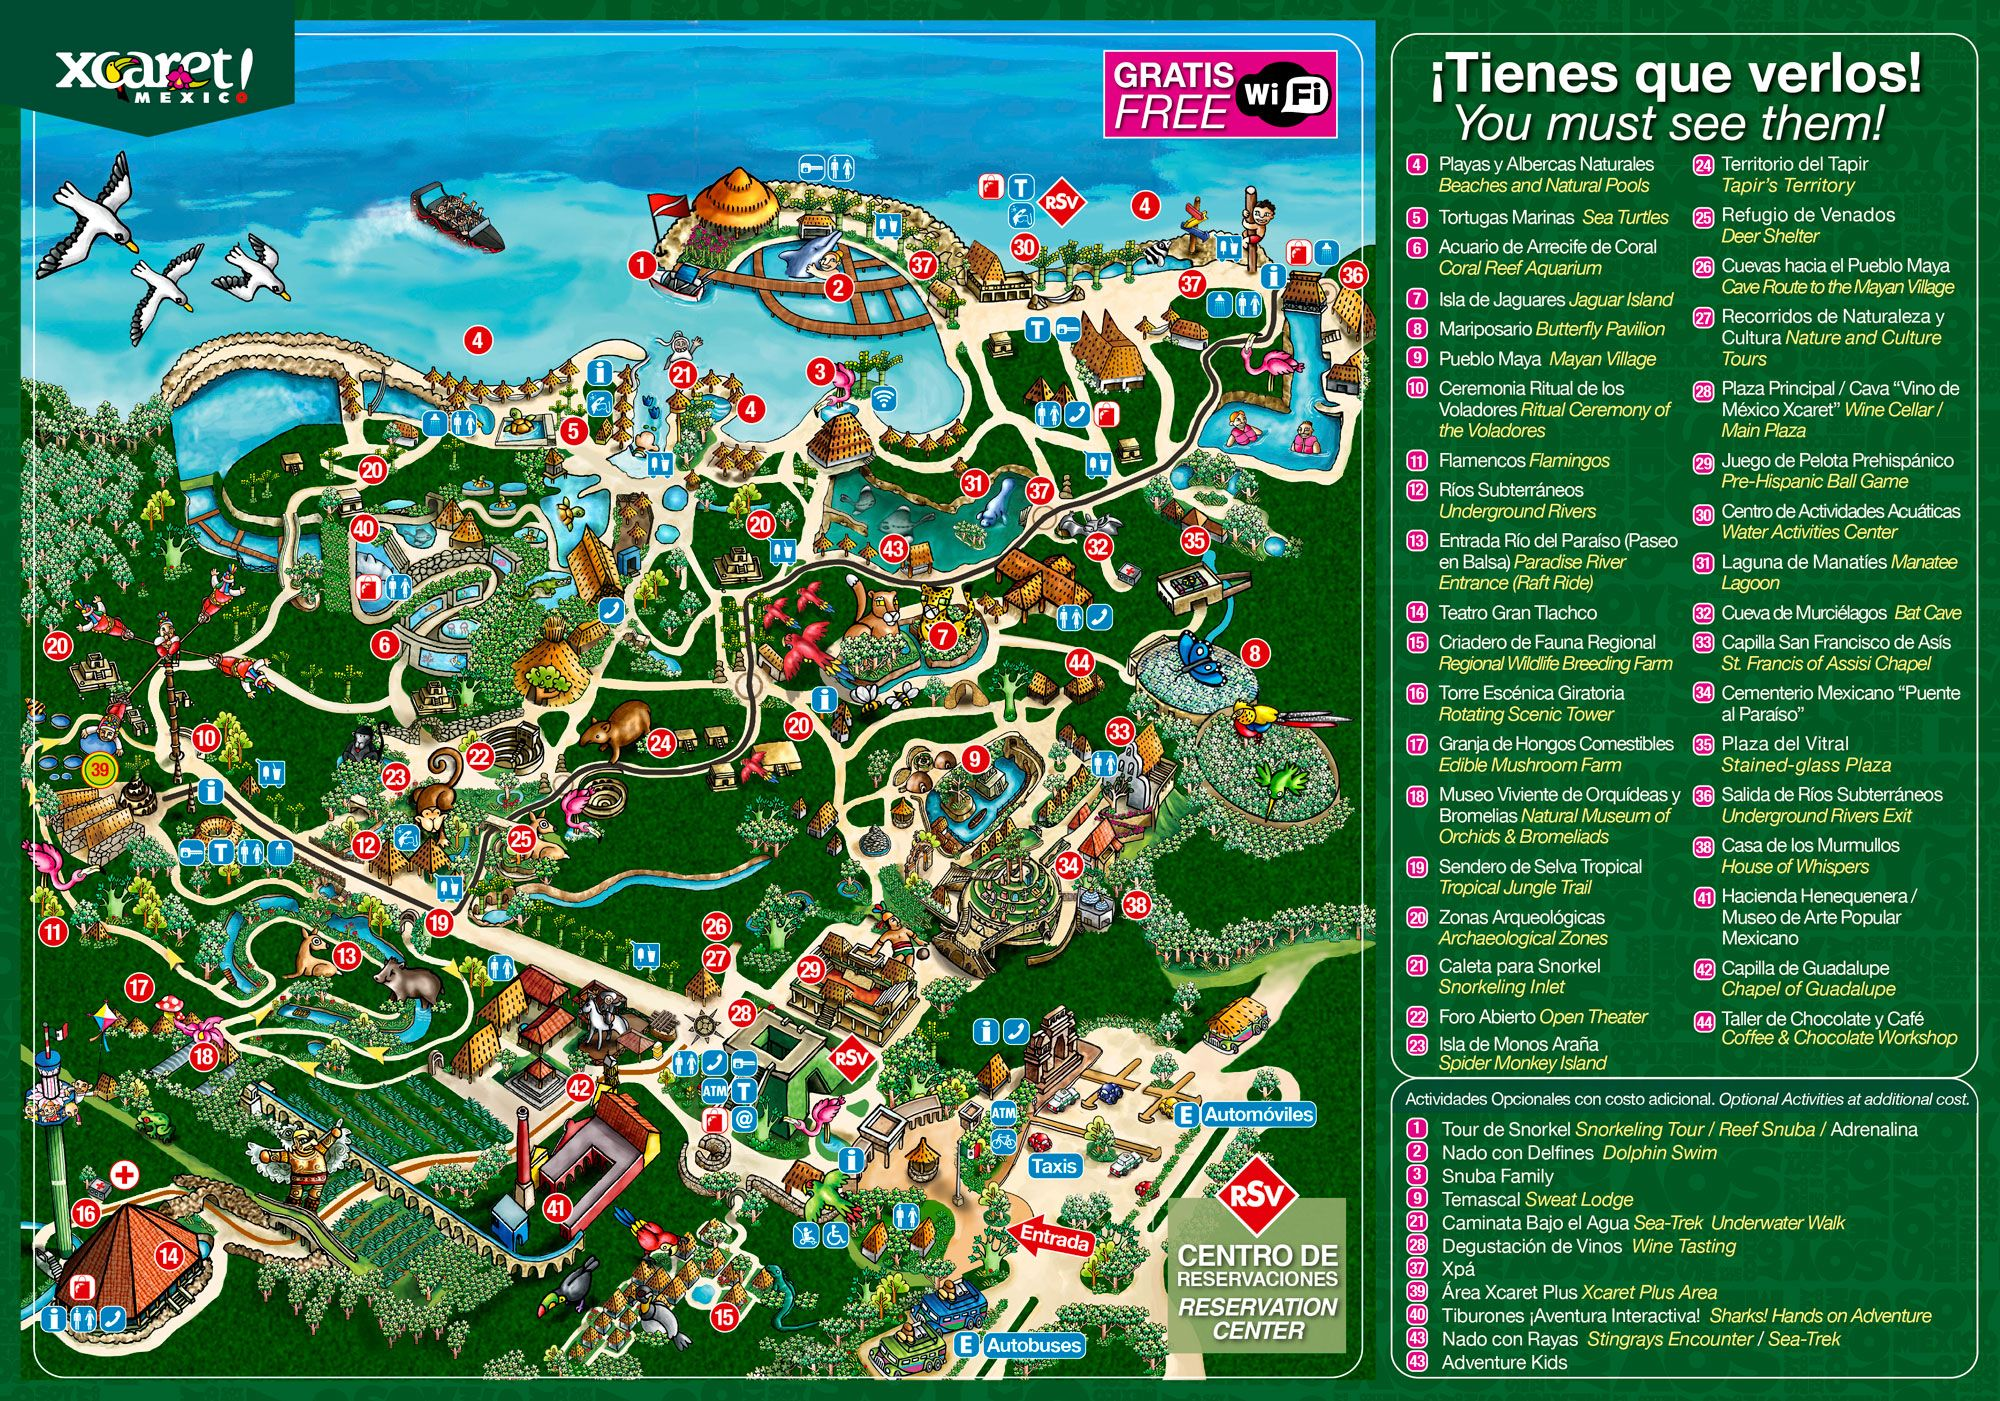 Mexiko Karte Cancun.Xcaret Review Itineraries For The Eco Theme Park Near Playa Del